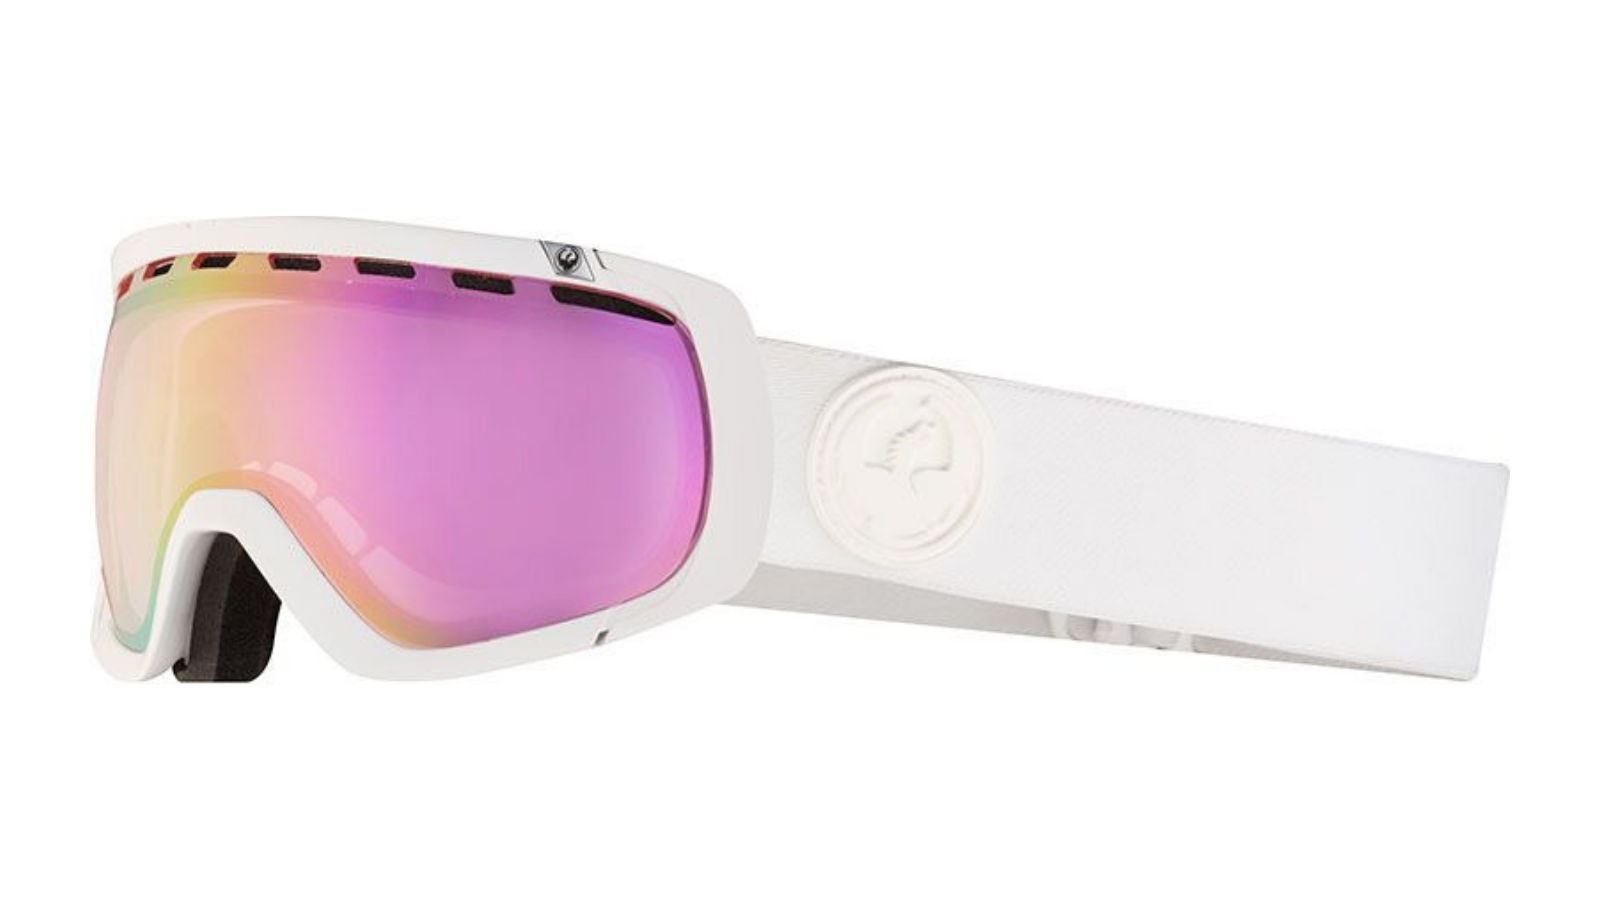 2a4b99857ec These Rogue snow goggles from Dragon are sure to keep you on the slopes no  matter the weather. The pink-tinted lenses have a 60% VLT